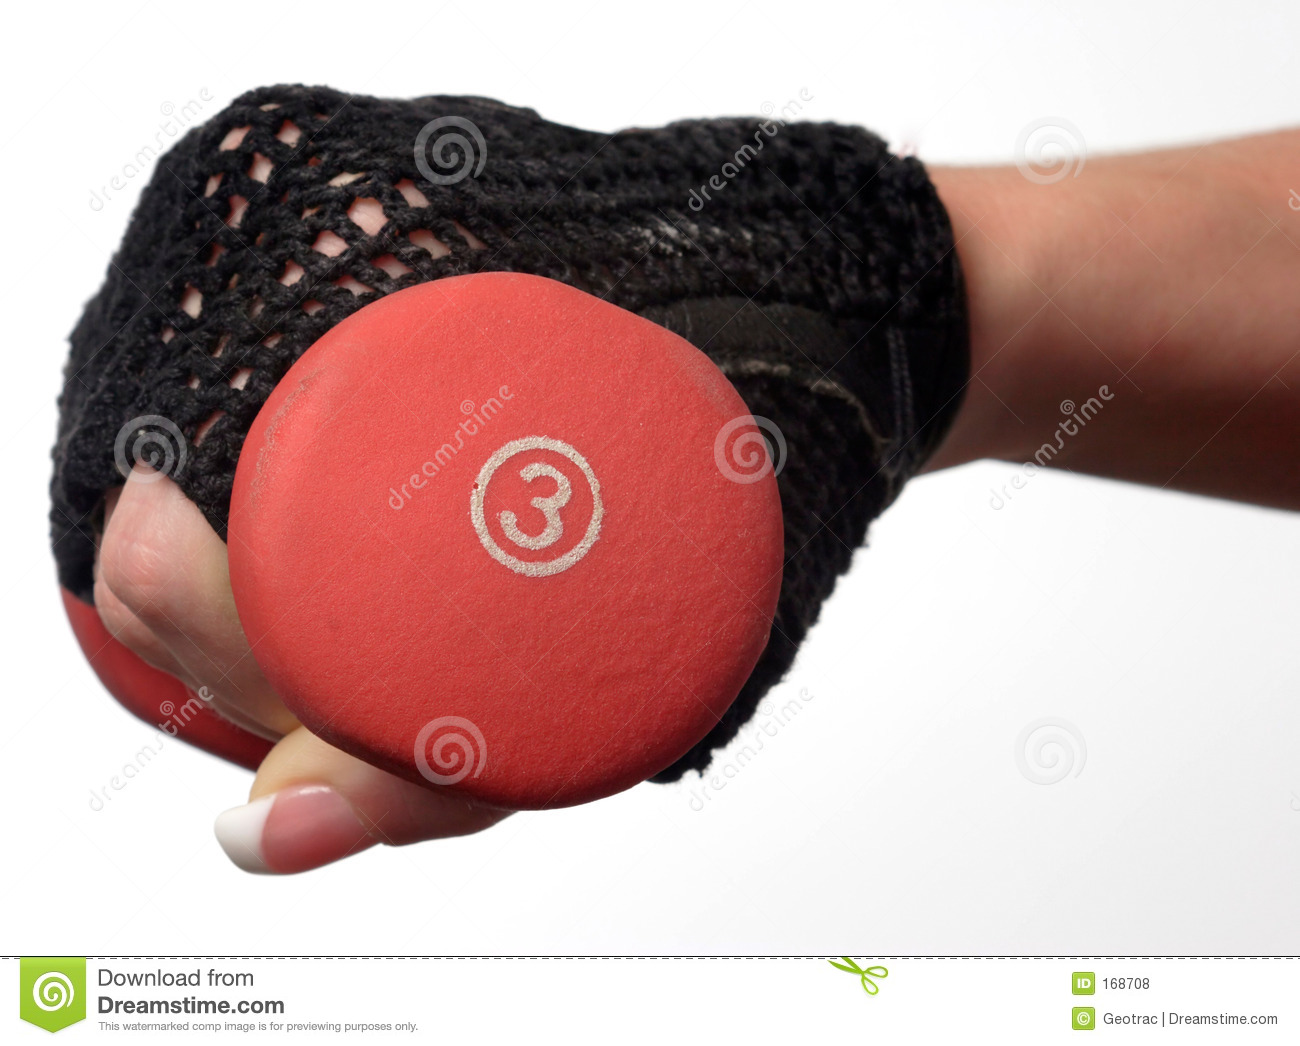 Closeup of a womans hand holding a 3 pound weight